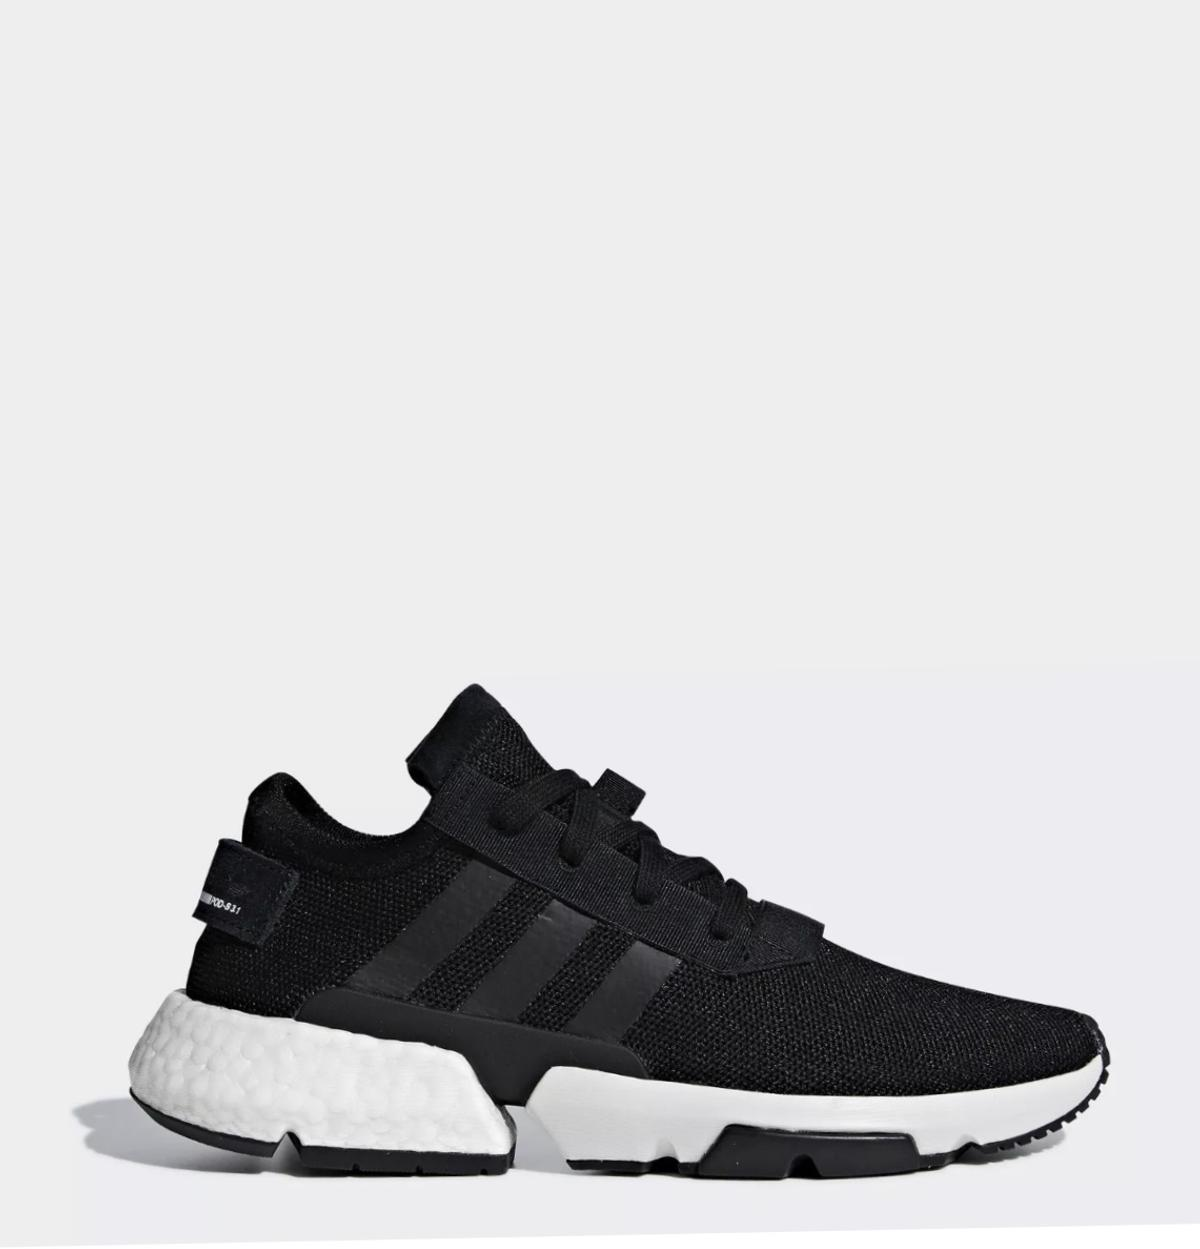 Men's Black Adidas POD s3.1 Trainers UK 9.5 in RG21